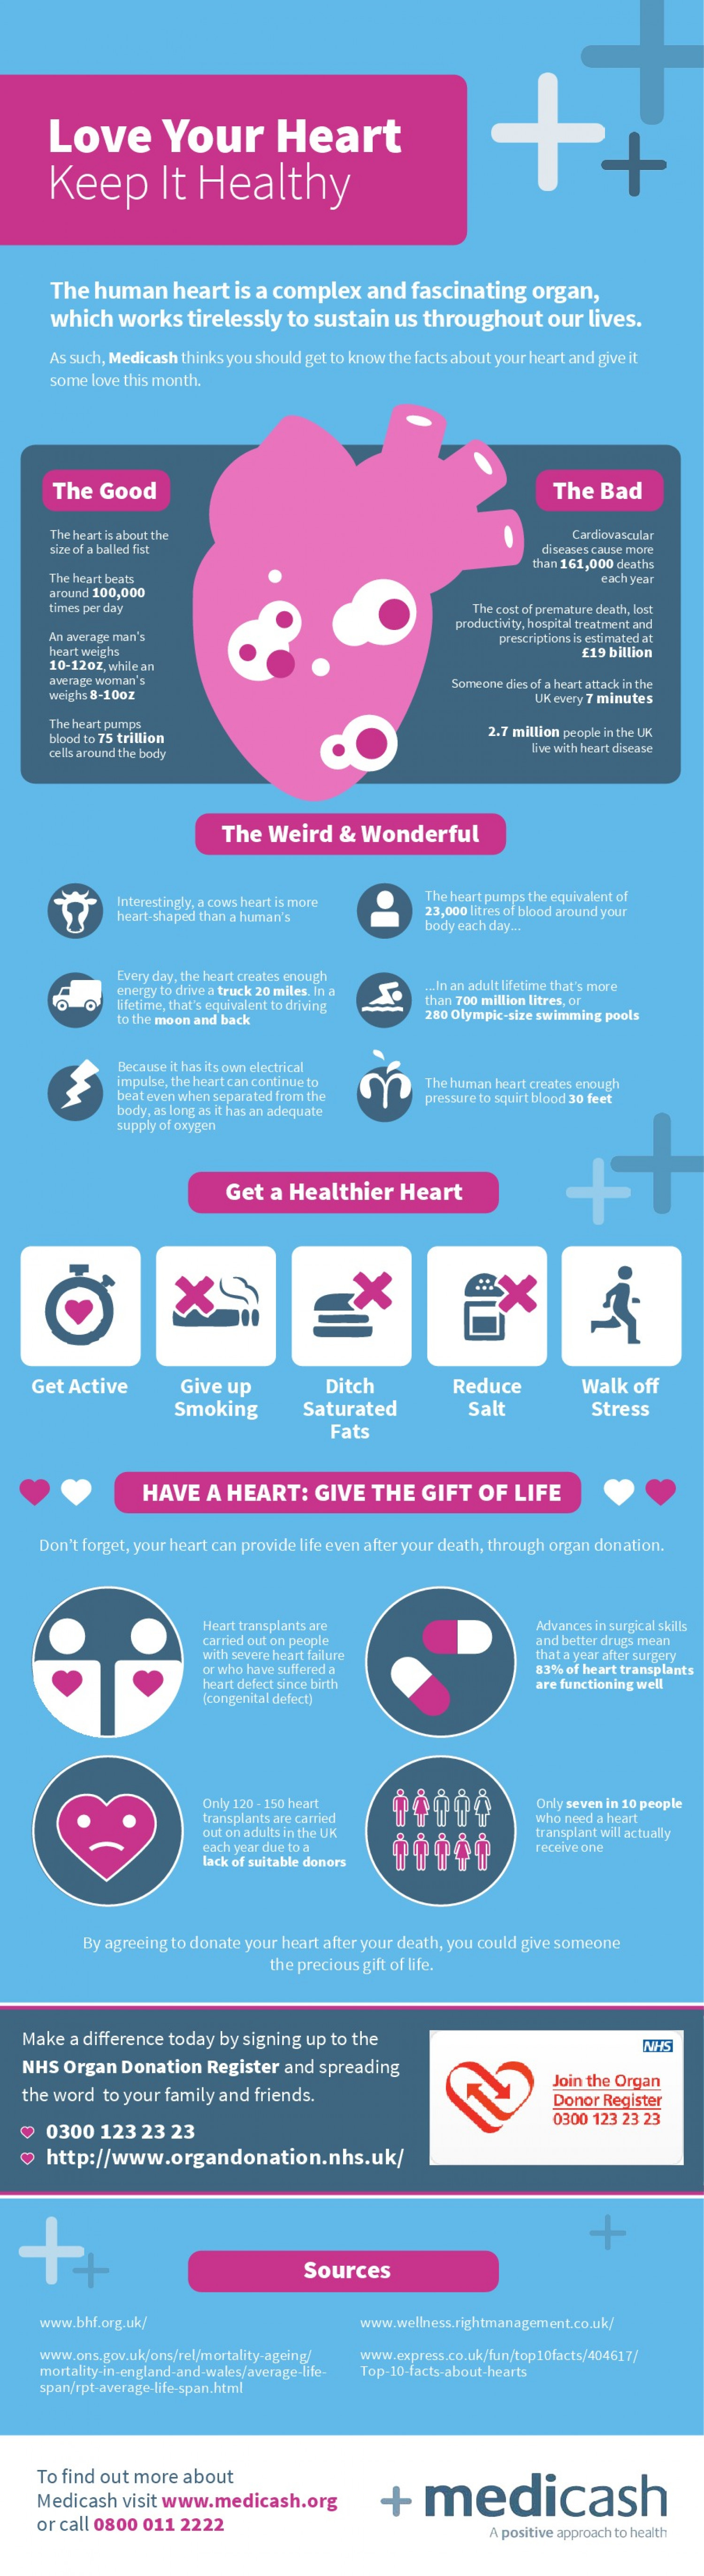 Love Your Heart - Keep It Healthy Infographic